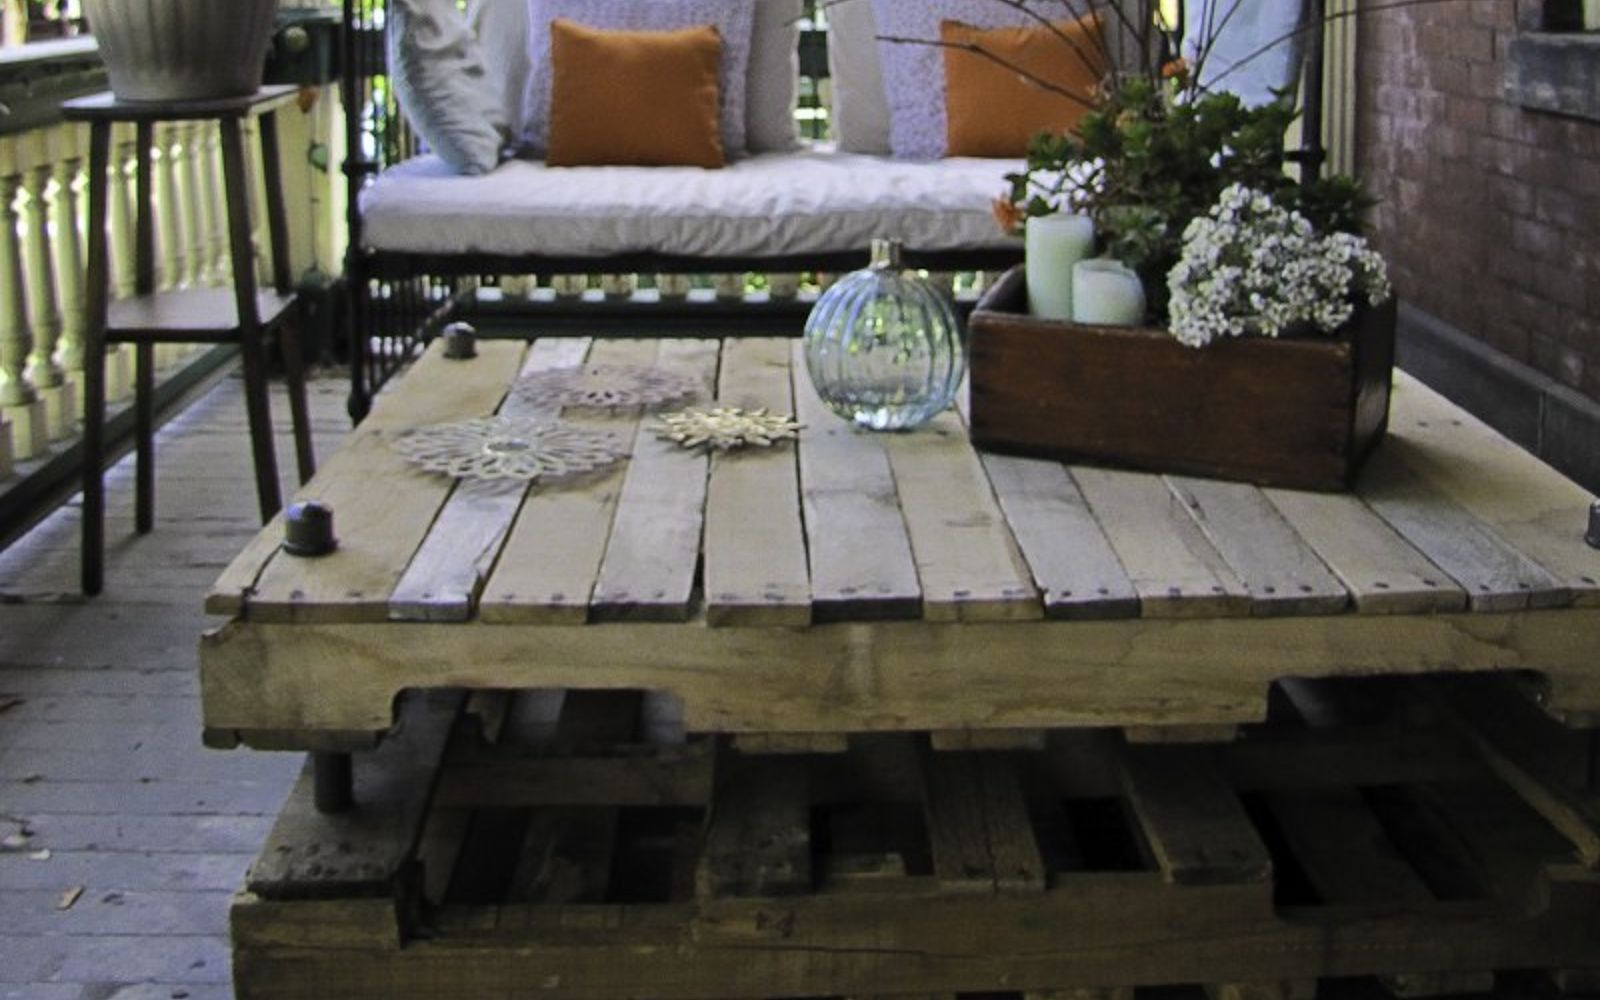 Build Coffee Table From Pallets: 15 Pallet Coffee Tables That Look Way Too Good To Be DIY